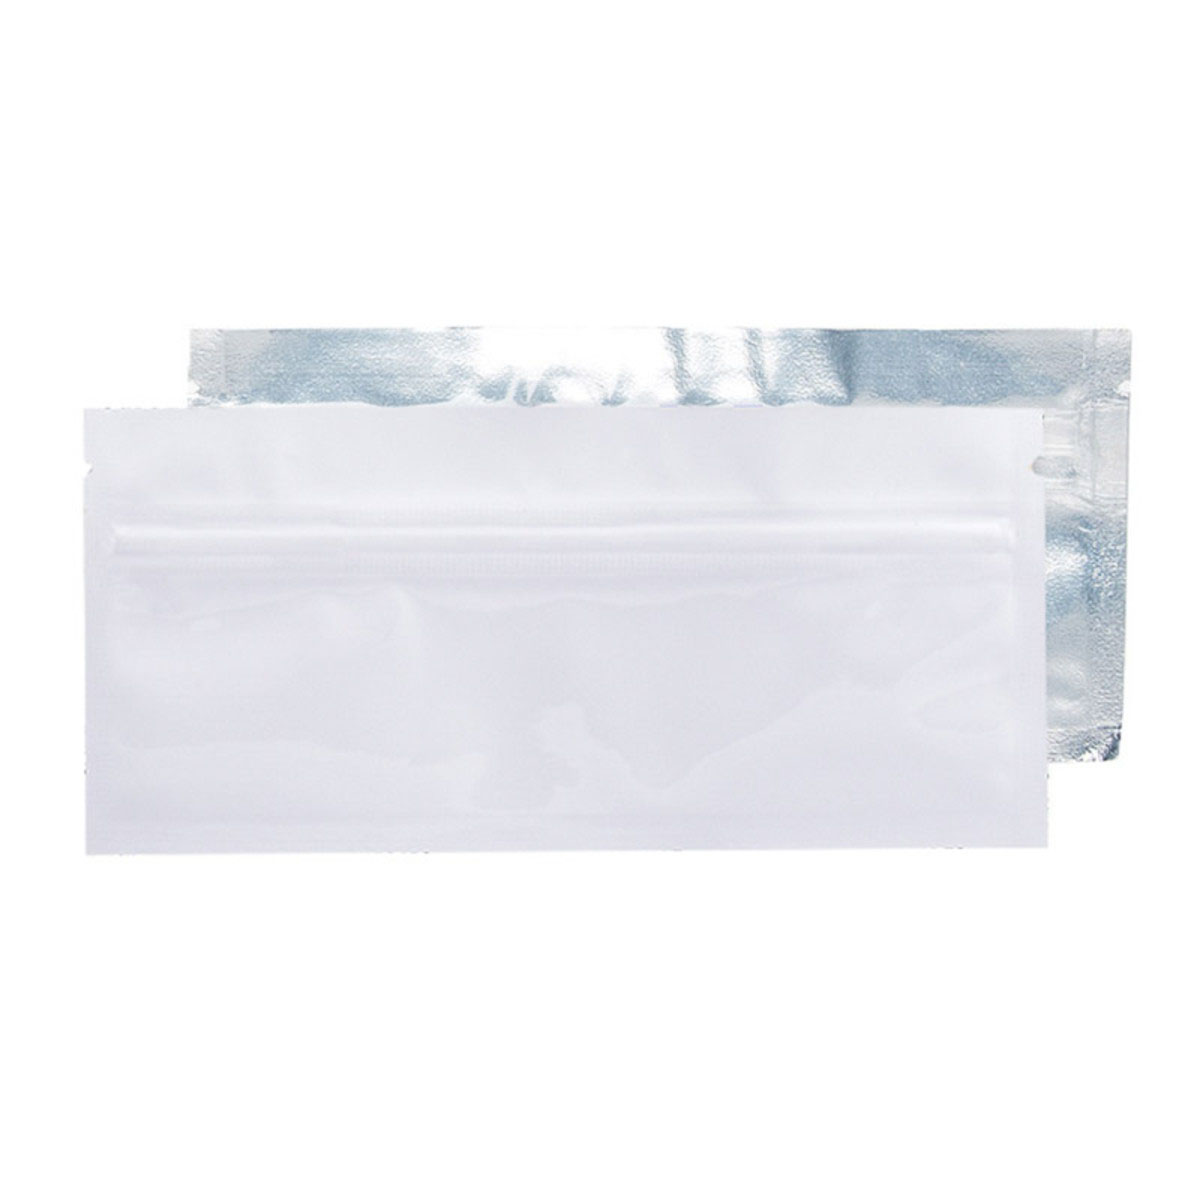 Pre-roll White/Clear Barrier Bags (100 Qty)